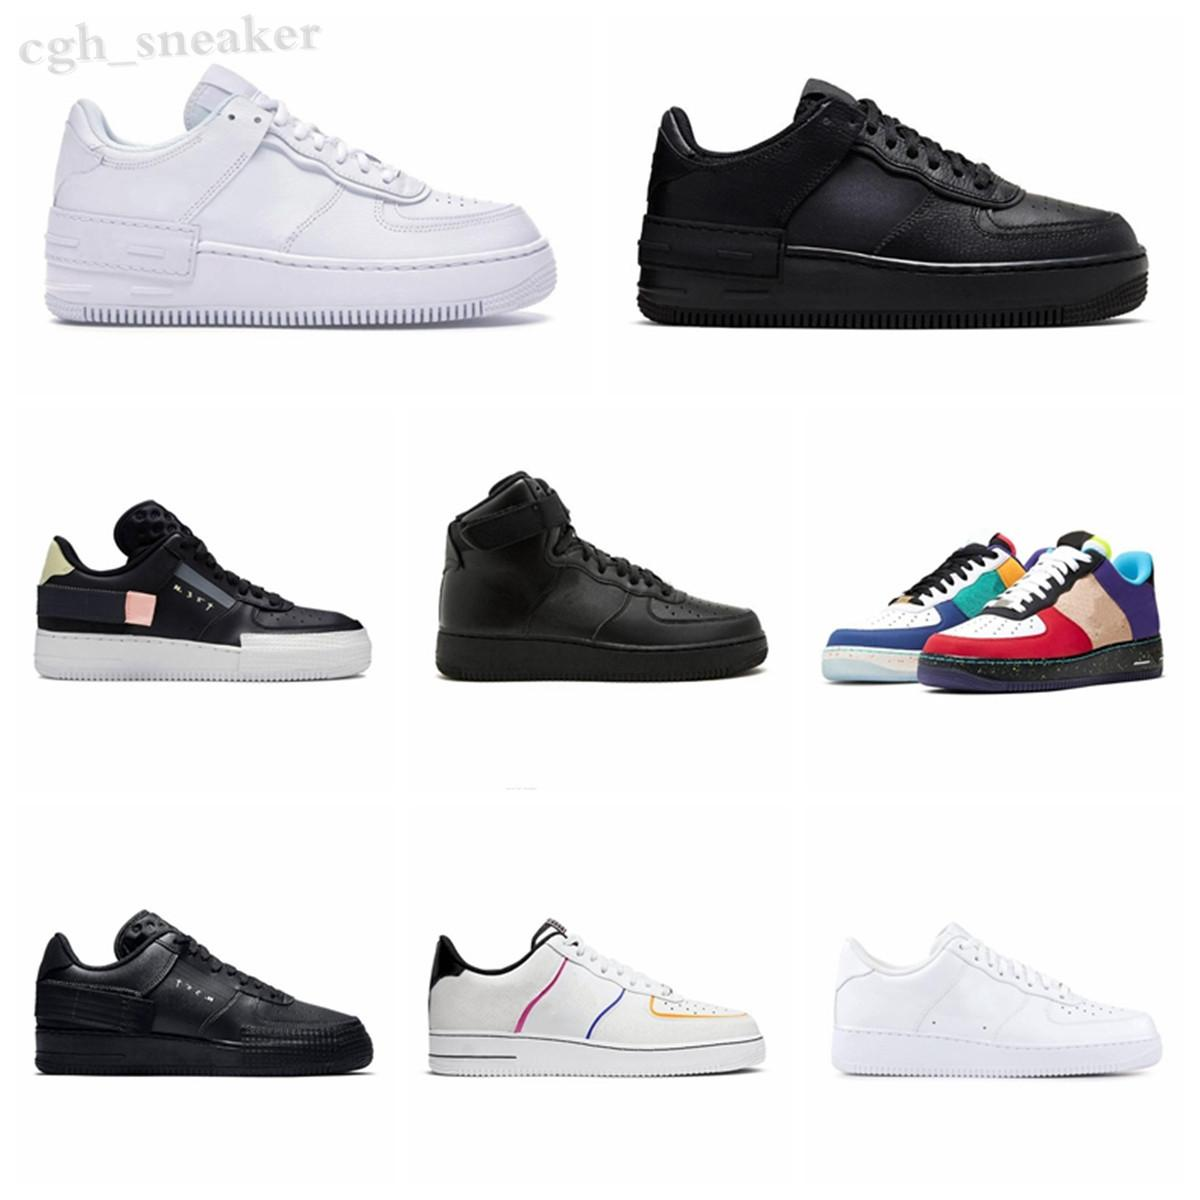 WMNS 07 Utilitaire Candy Macaron Femmes Femmes Chaussures 1 Share Sports Skateboard Baskets Paniers Sneakers Chaussures WR06